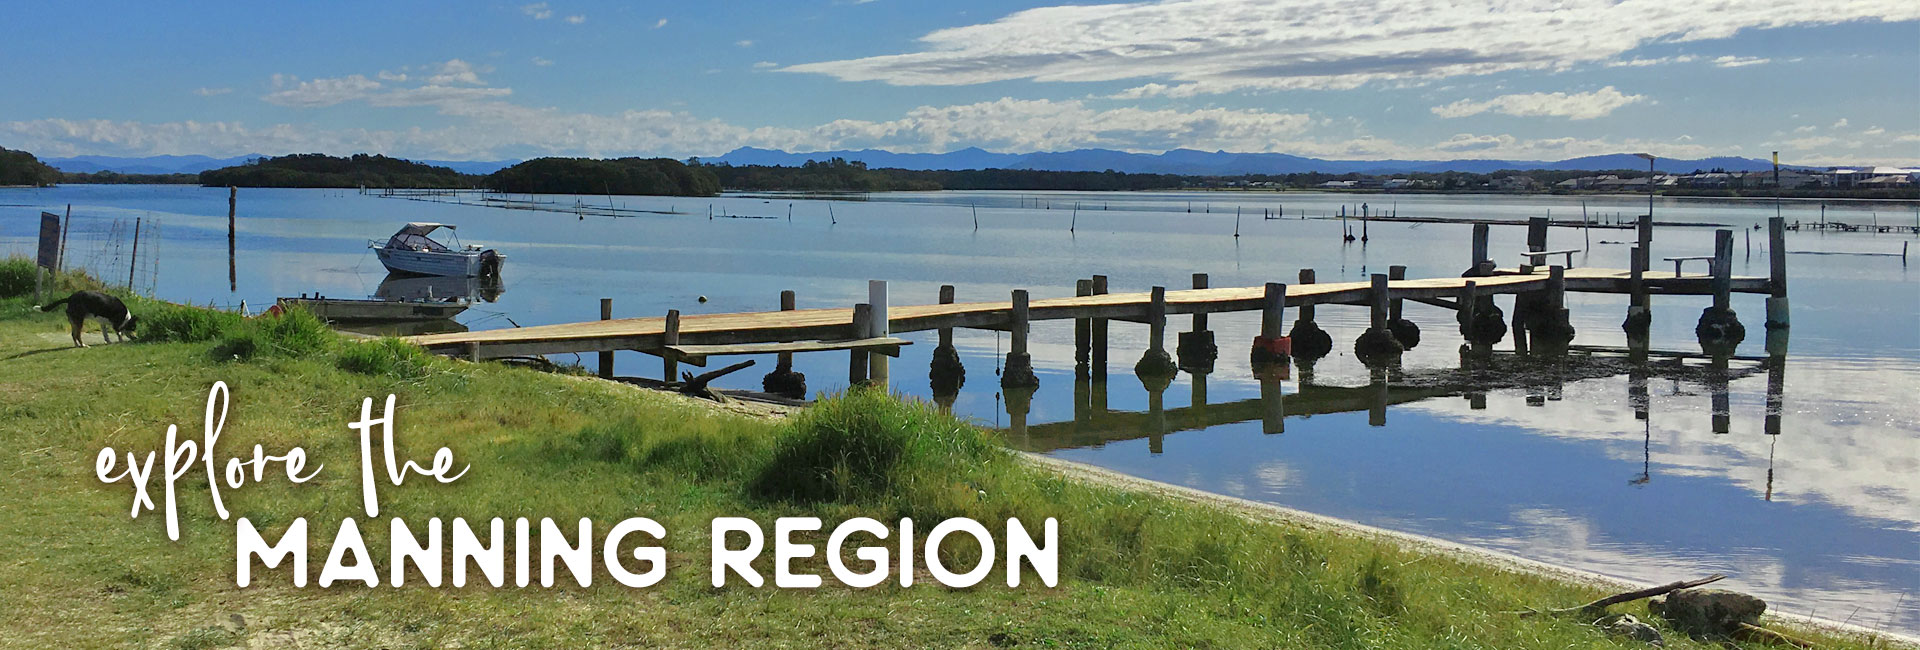 explore the Manning region